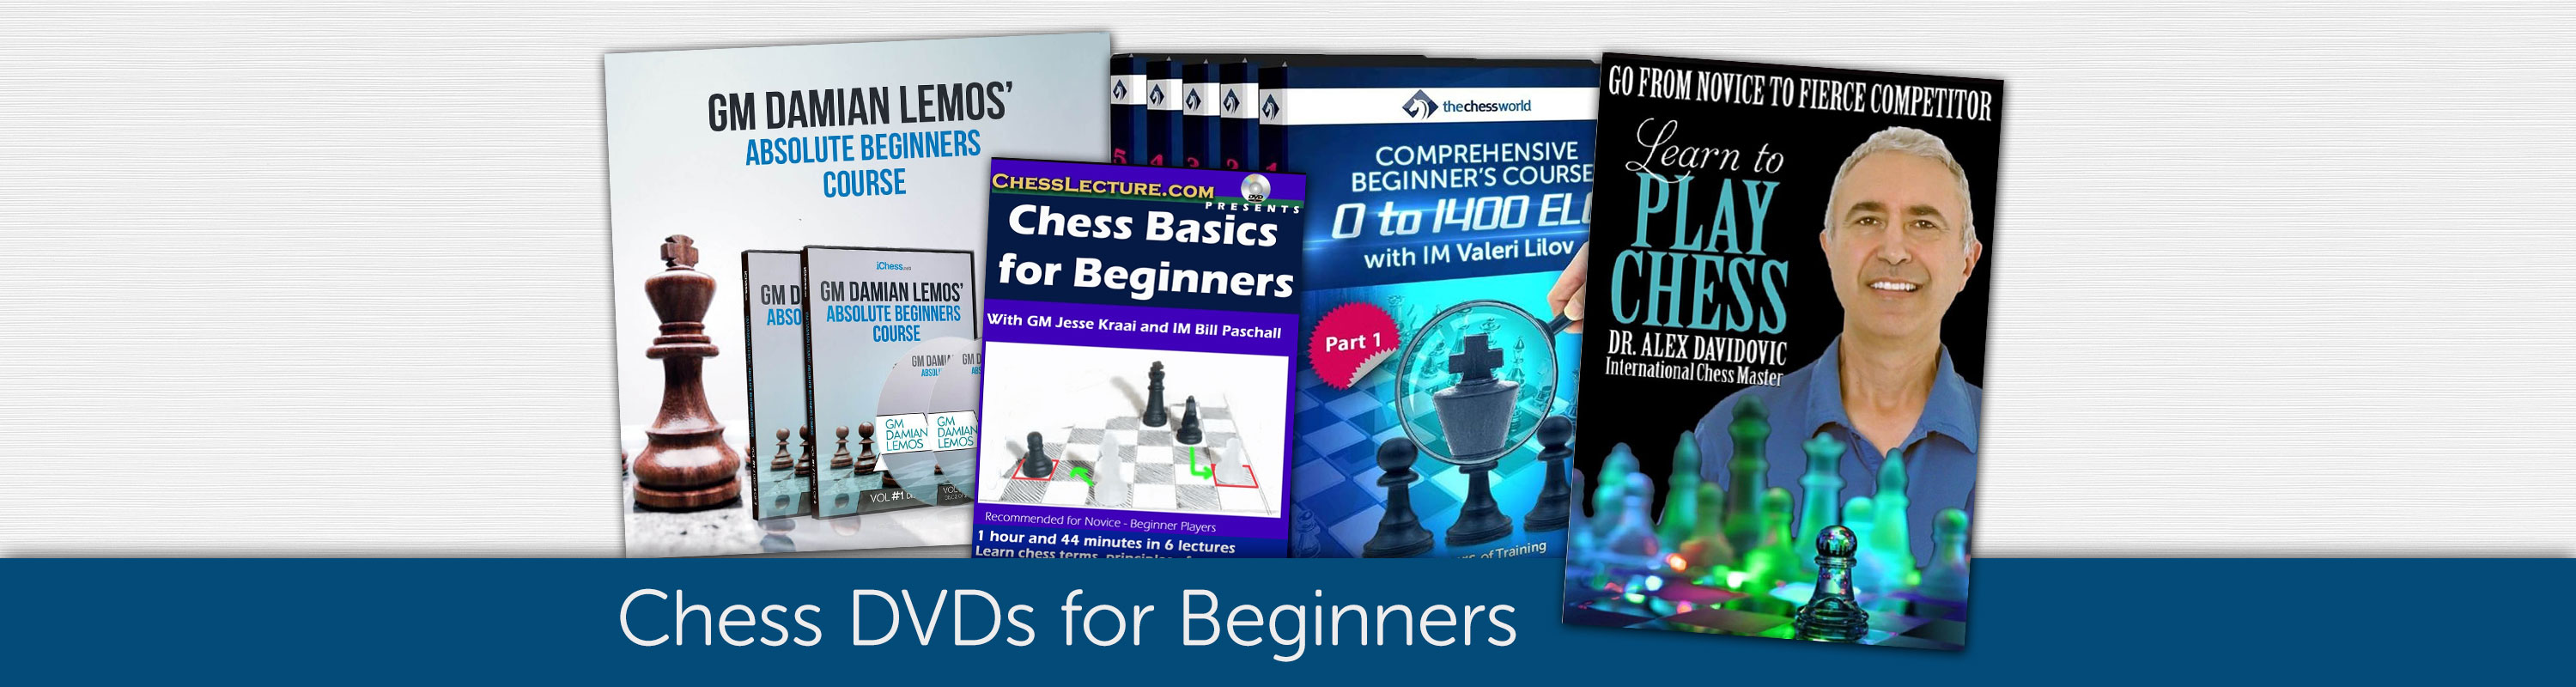 Chess DVDs for Beginners